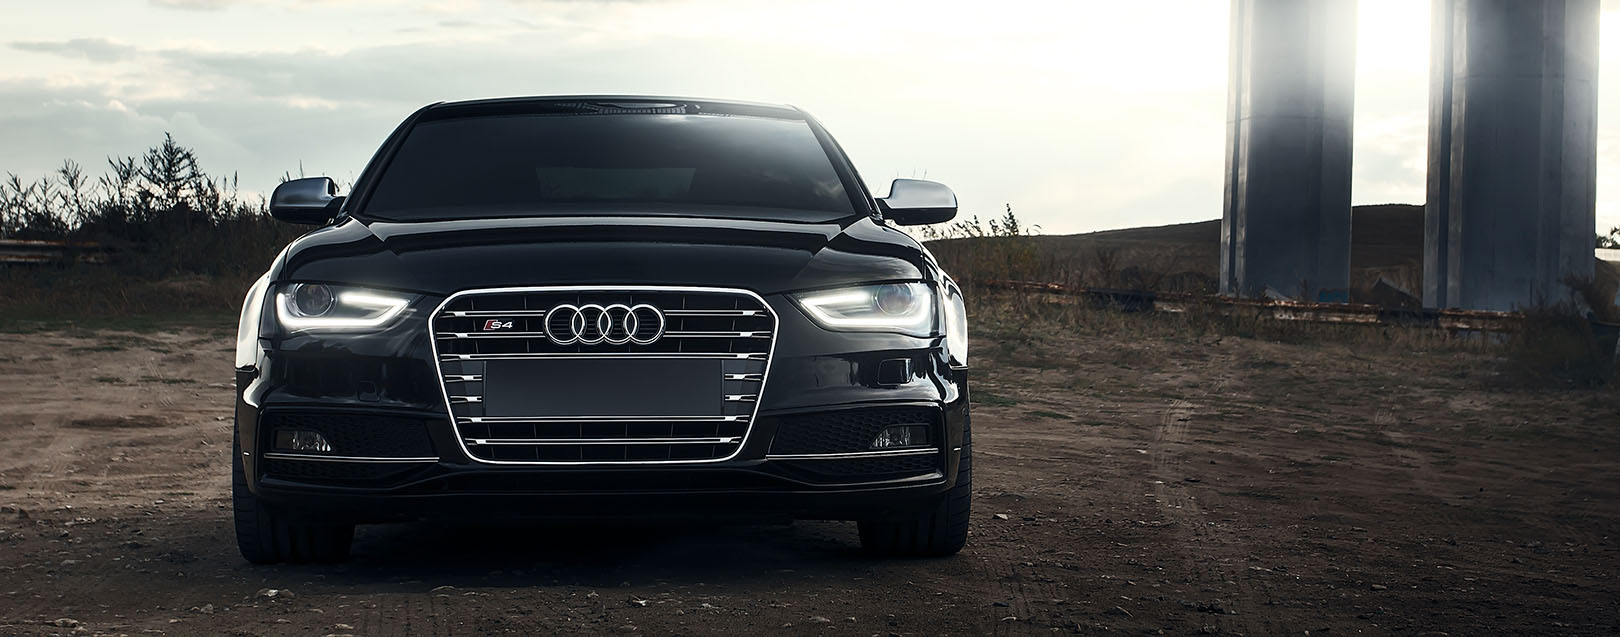 Audi targets top-most position in the luxury segment in India